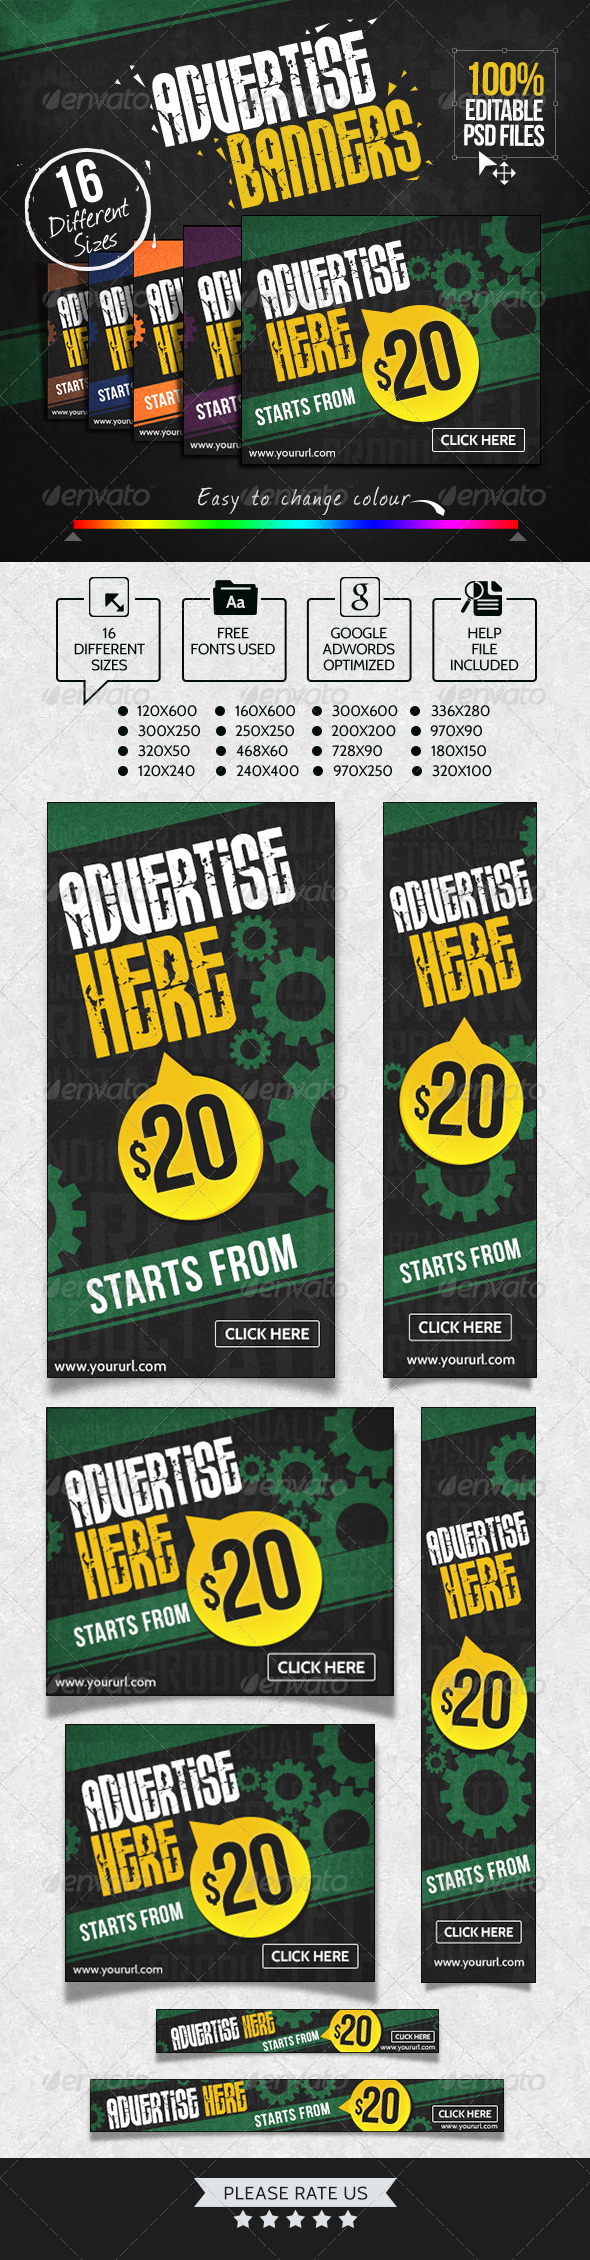 GraphicRiver Advertise Here Banner Set 7112002